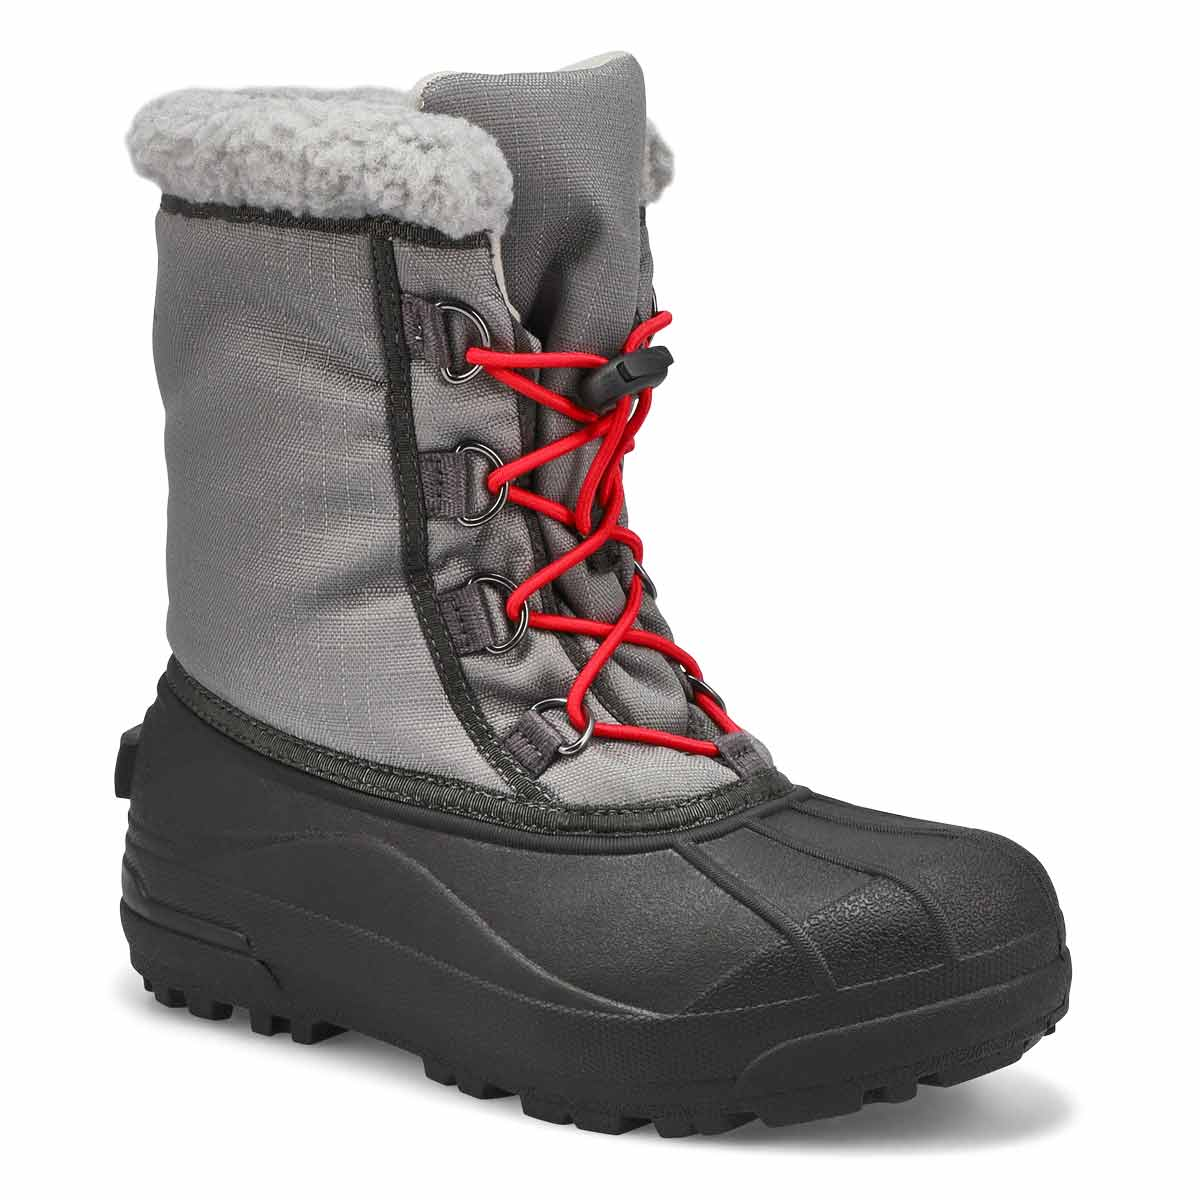 Kds Cumberland gry/coal winter boot